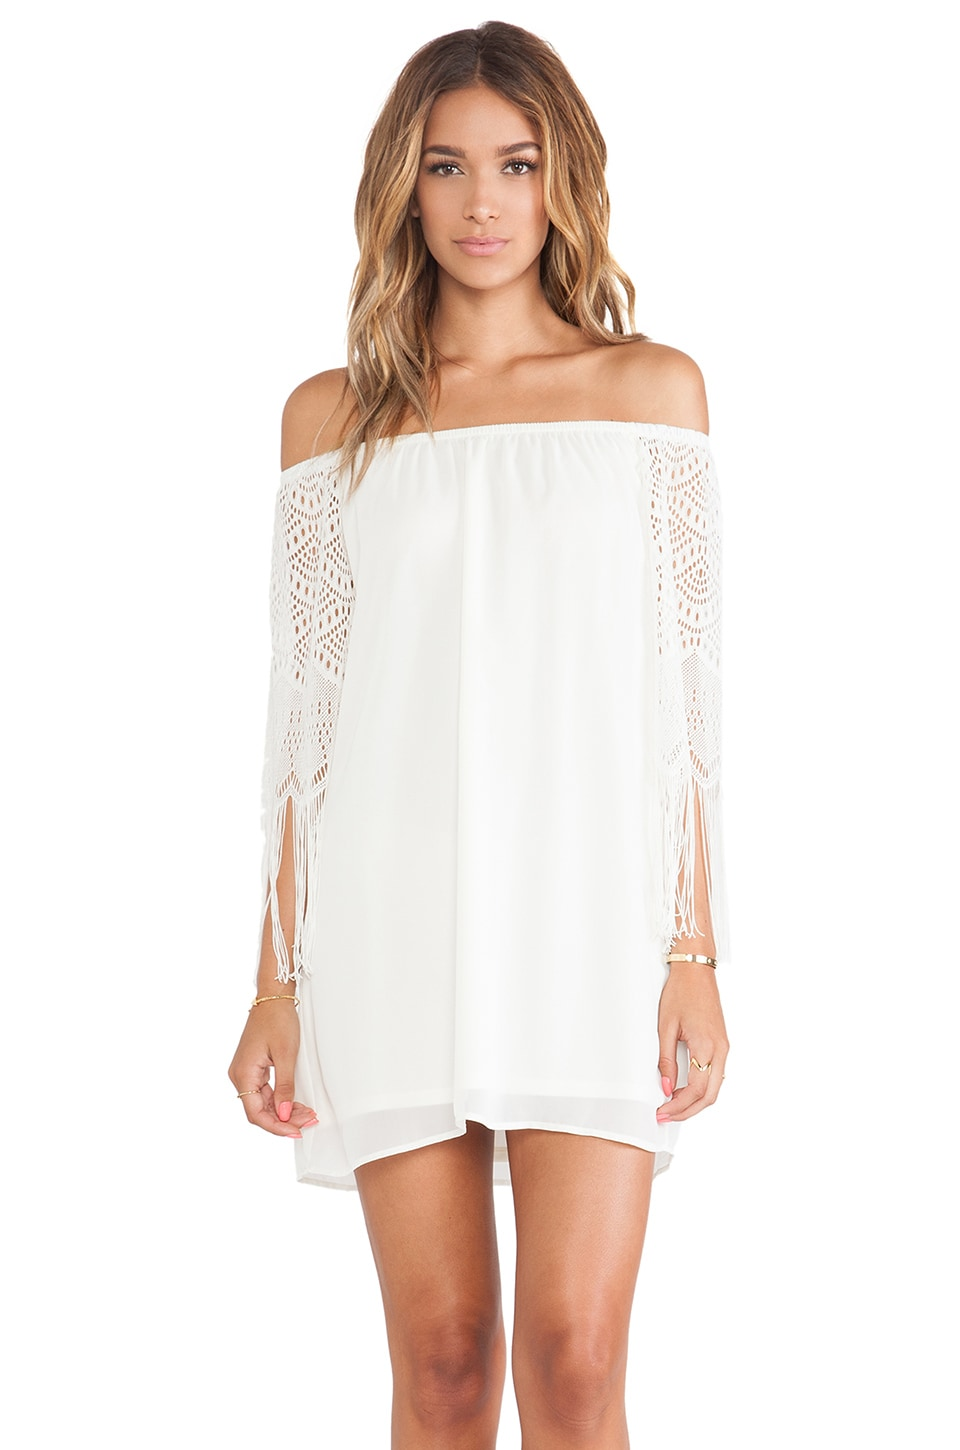 VAVA by Joy Han Farrah Off Shoulder Dress in Ivory